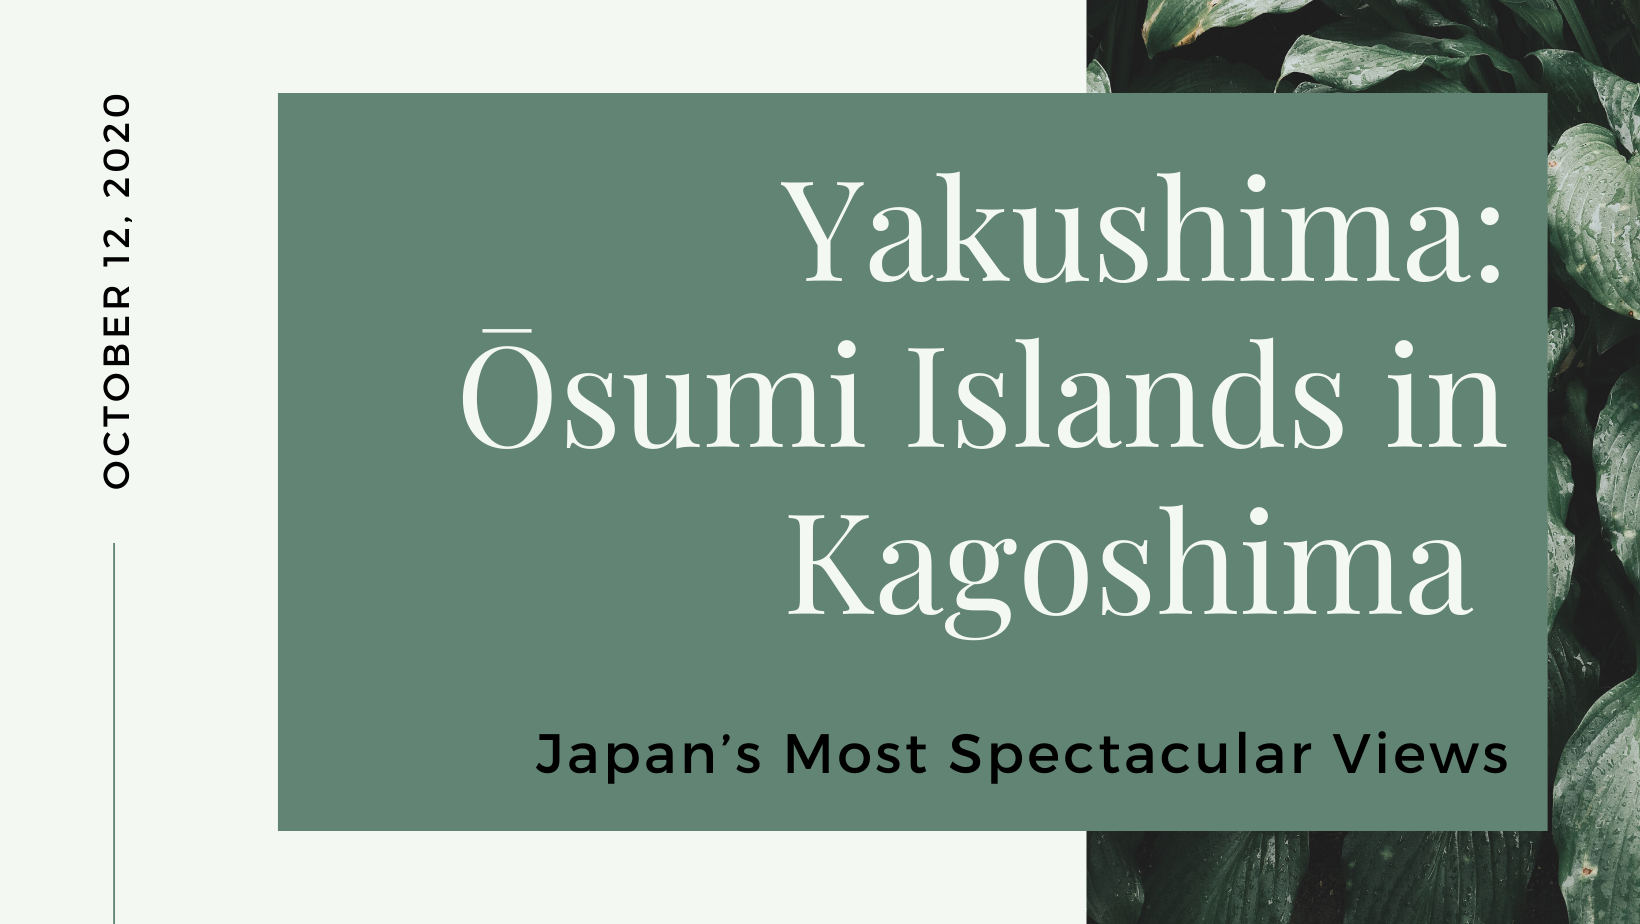 Yakushima: Ōsumi Islands in Kagoshima – Japan's Most Spectacular Views